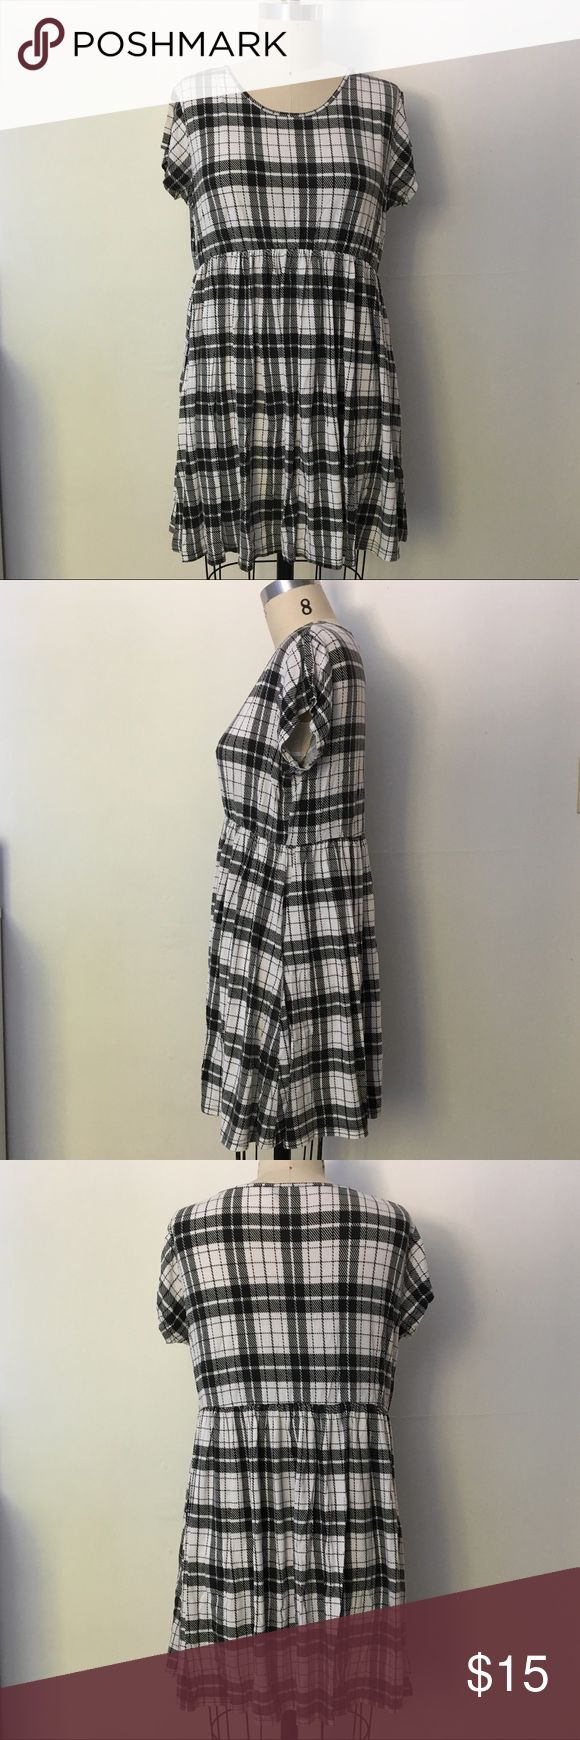 Black and white plaid dress Super comfy plaid mini dress with cinched empire waist. Perfect for weekends and lounging. 95% viscose, 5% elastane. ASOS Dresses Mini